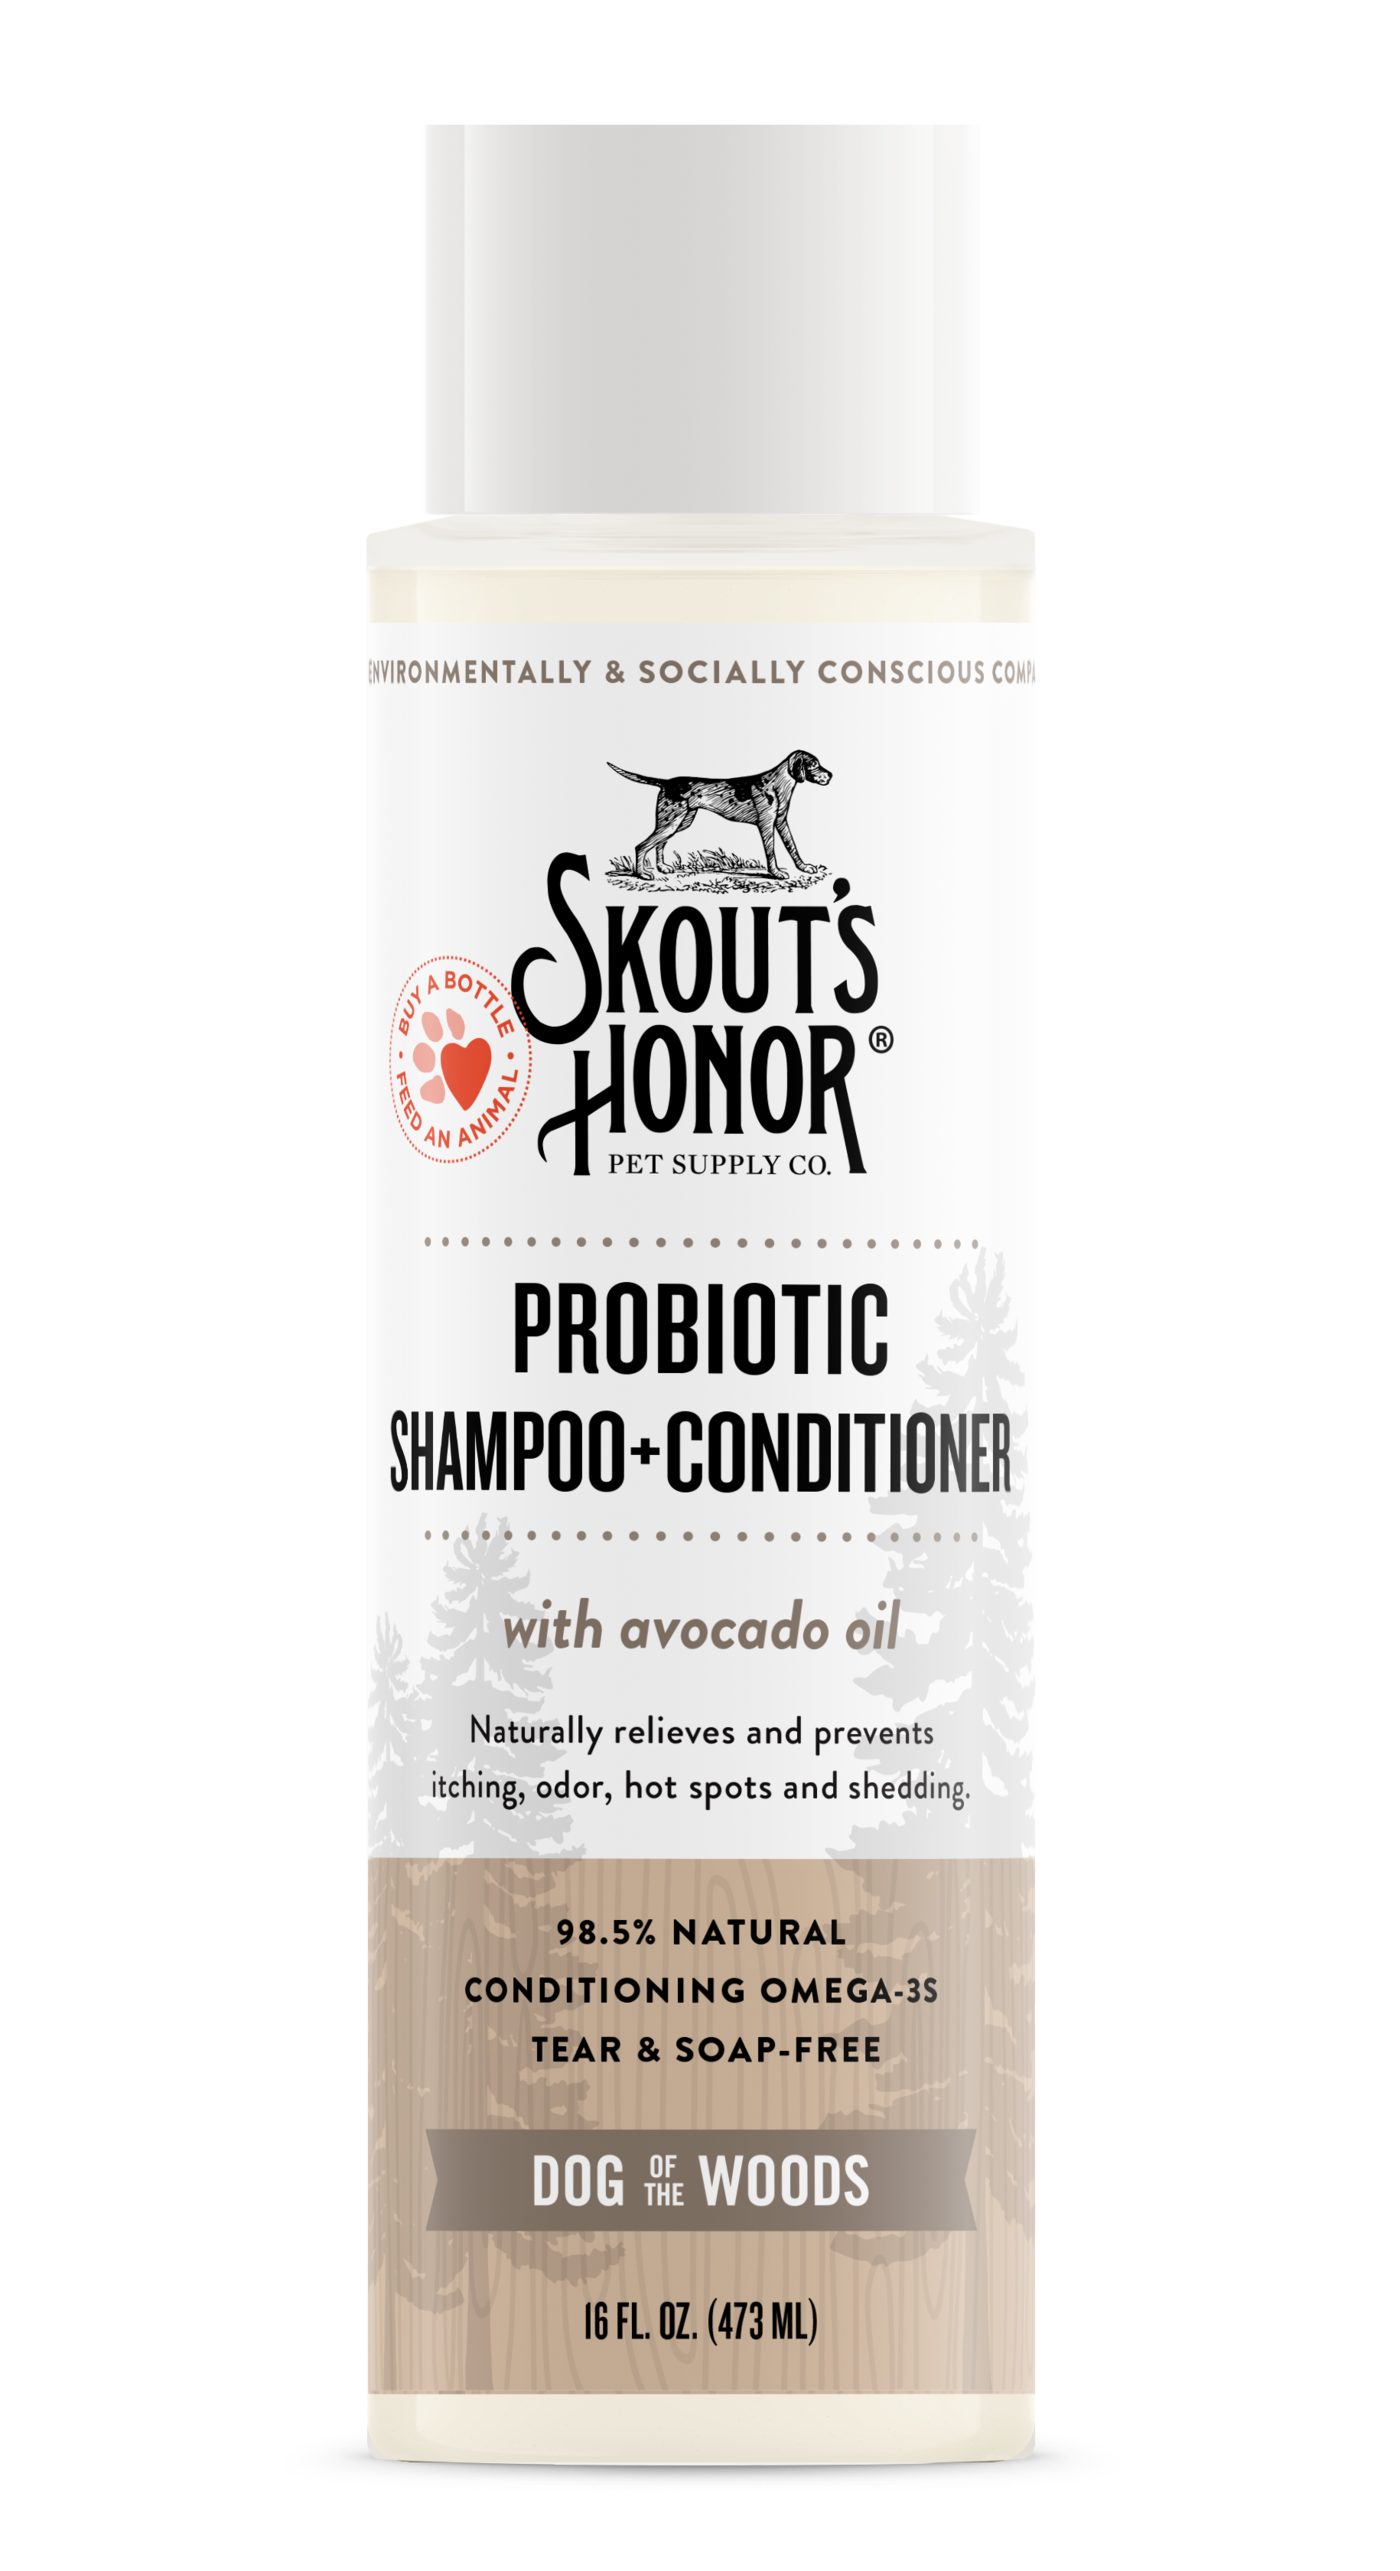 Skout's Honor Probiotic Shampoo & Conditioner (2-in-1) For Dogs & Cats, Dog of the Woods, 16-oz bottle